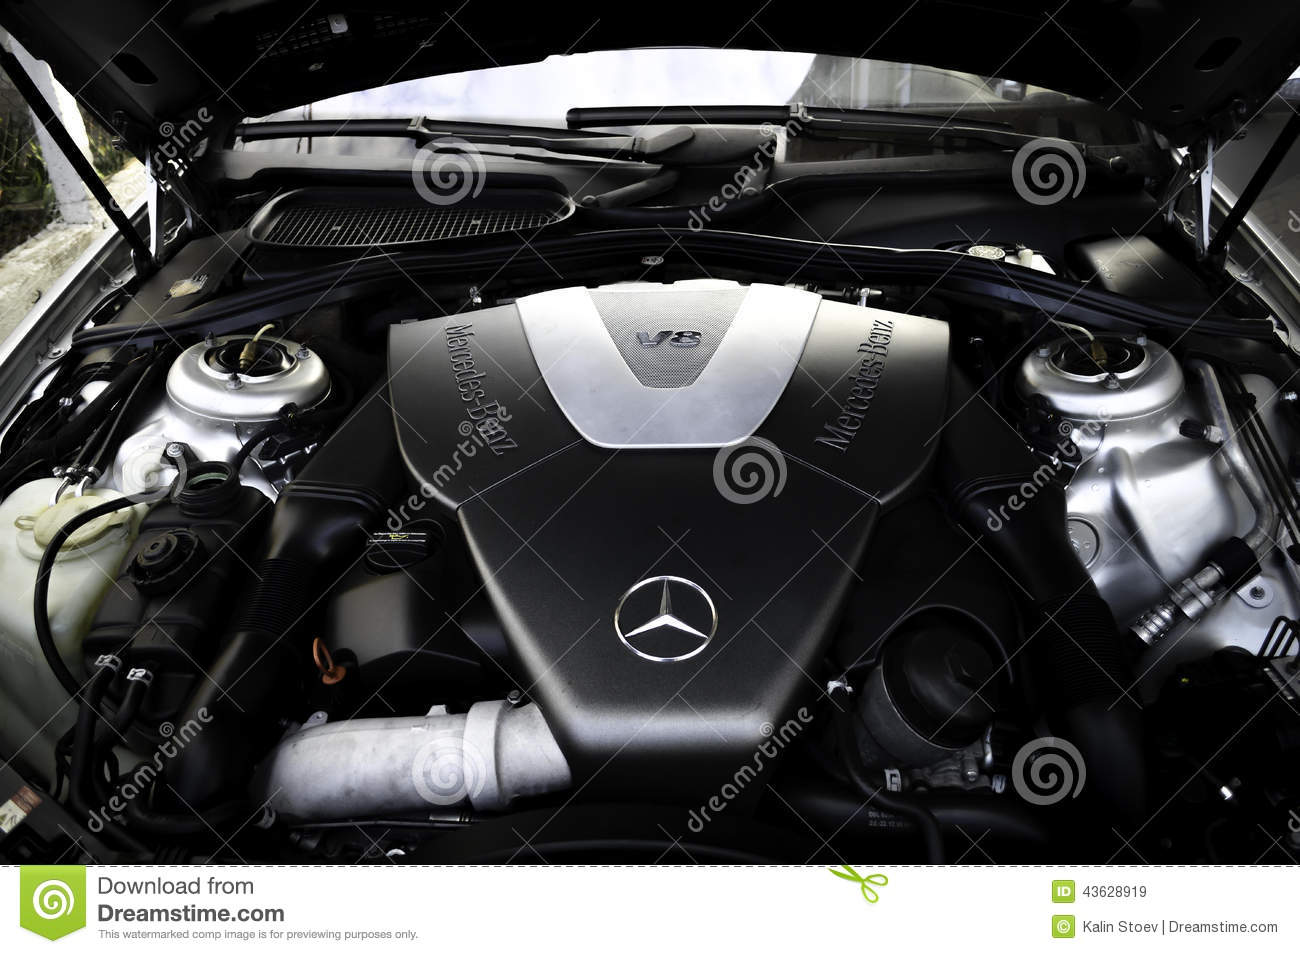 mercedes benz v8 engine editorial stock image image. Black Bedroom Furniture Sets. Home Design Ideas